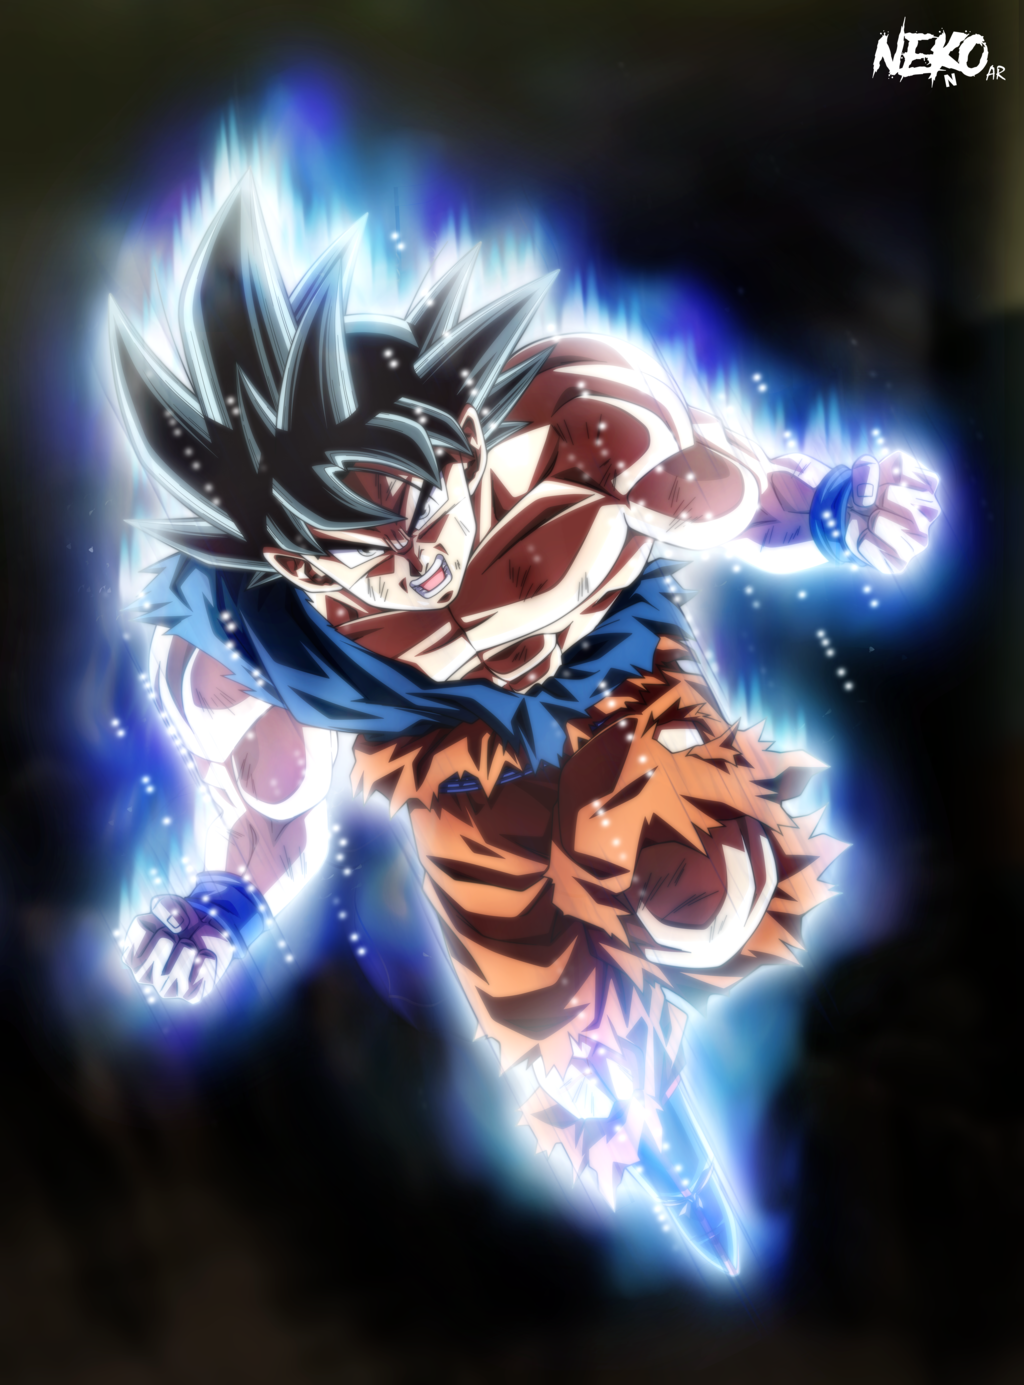 Ultra Instinct Goku wtf by NekoAR 1024x1385